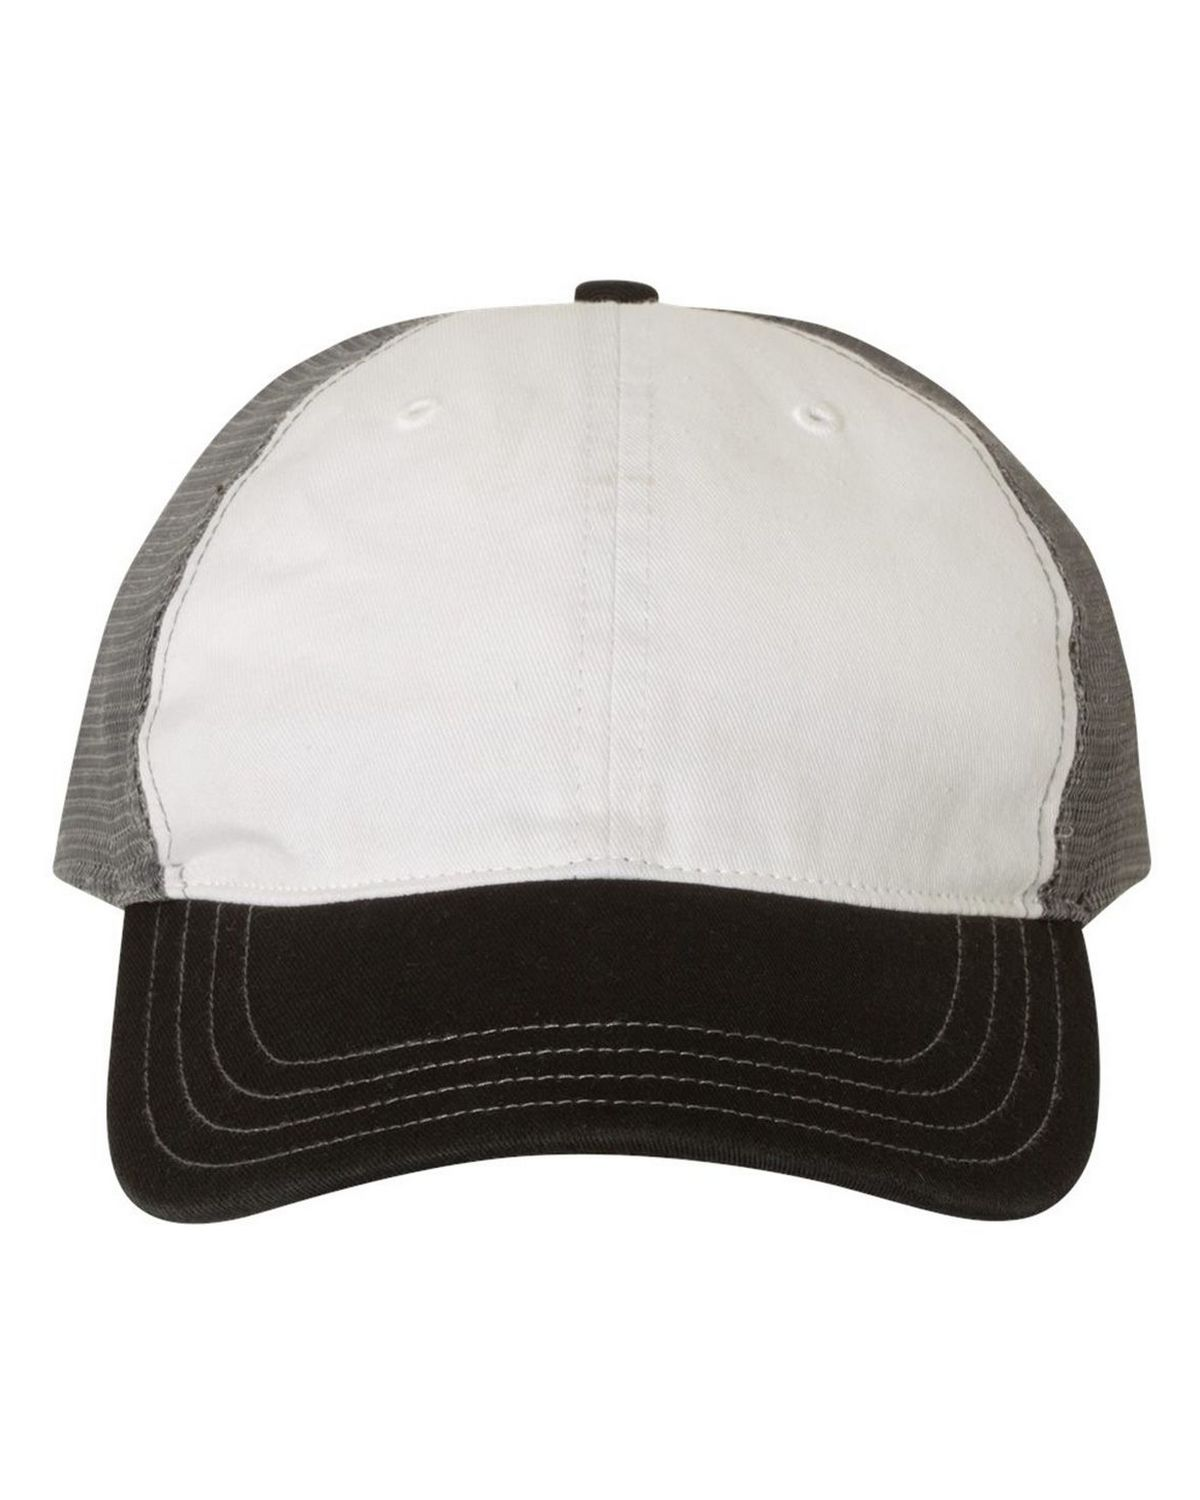 58d5966fe3e7d Richardson 111 Garment Washed Trucker Cap - Free Shipping Available